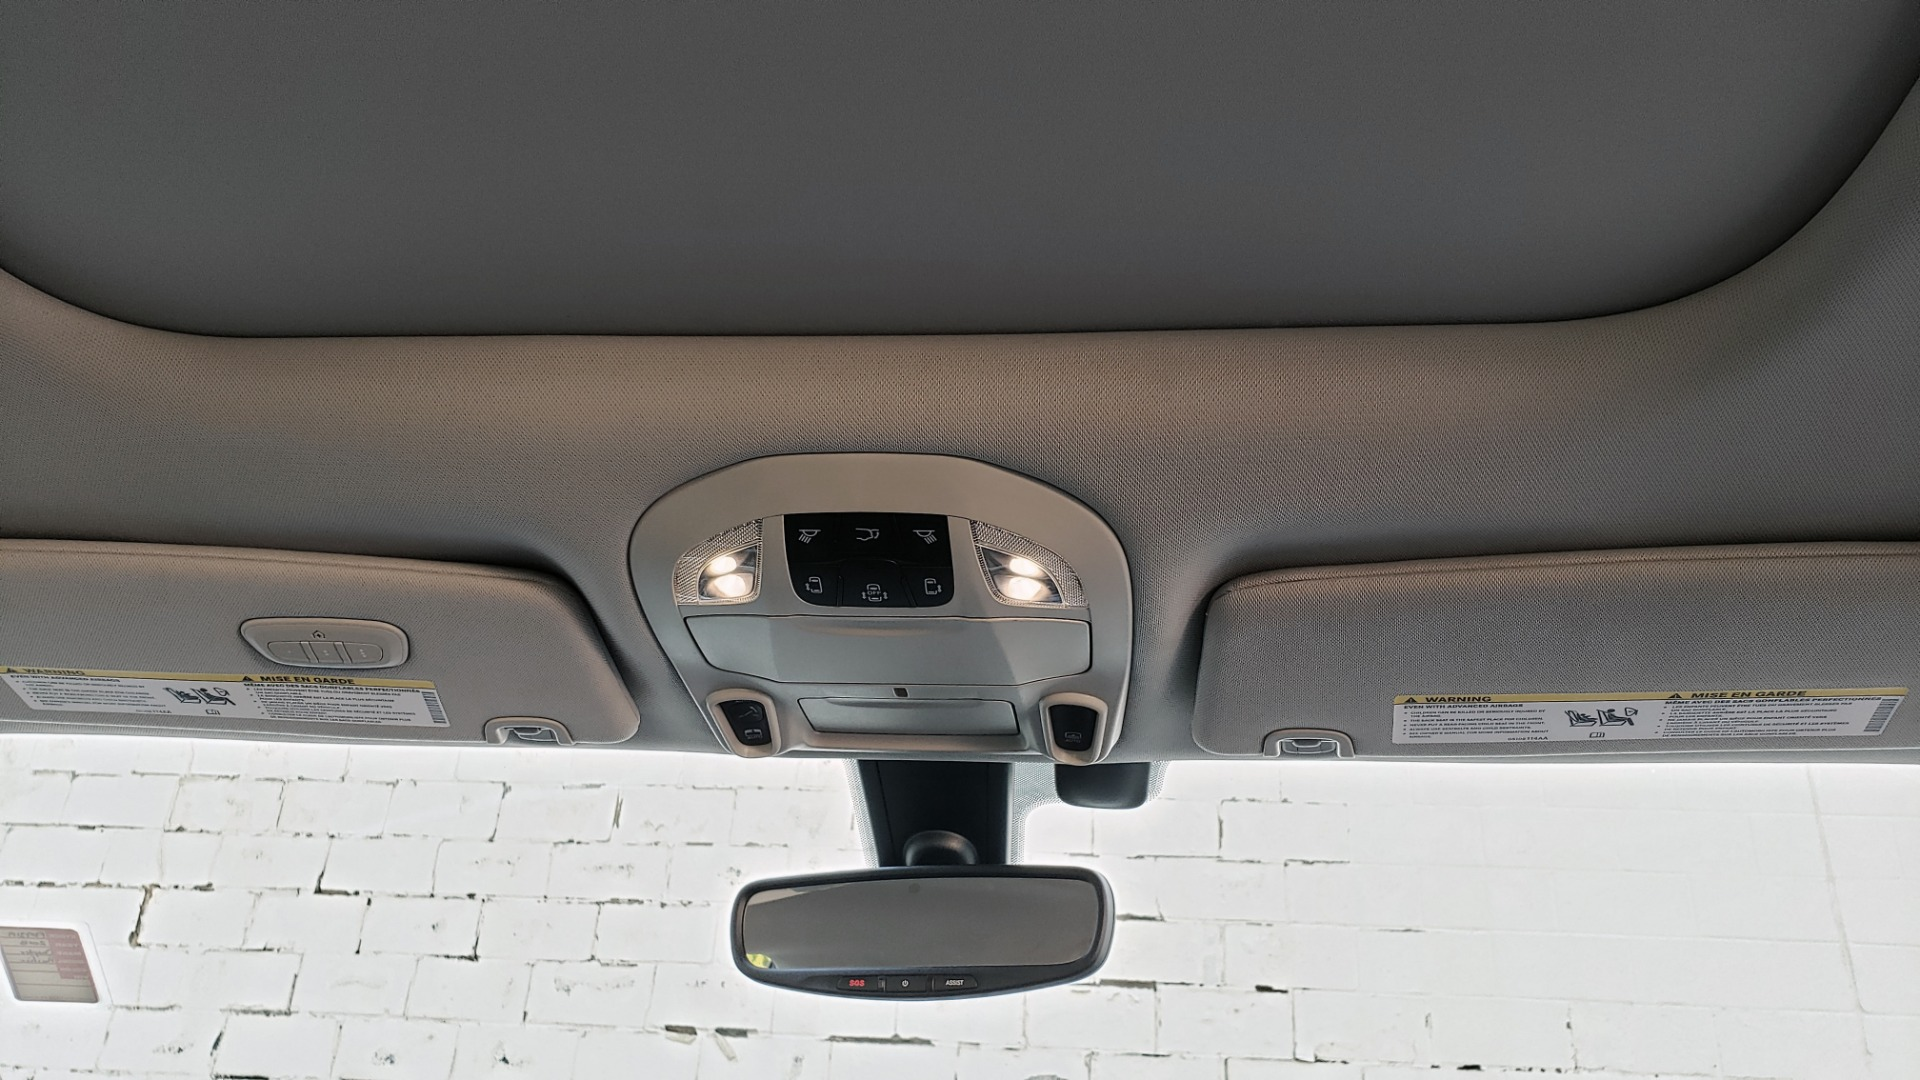 Used 2018 Chrysler PACIFICA LIMITED / 3.6L V6 / NAV / PANO-ROOF / 3-ROWS / REARVIEW for sale Sold at Formula Imports in Charlotte NC 28227 83